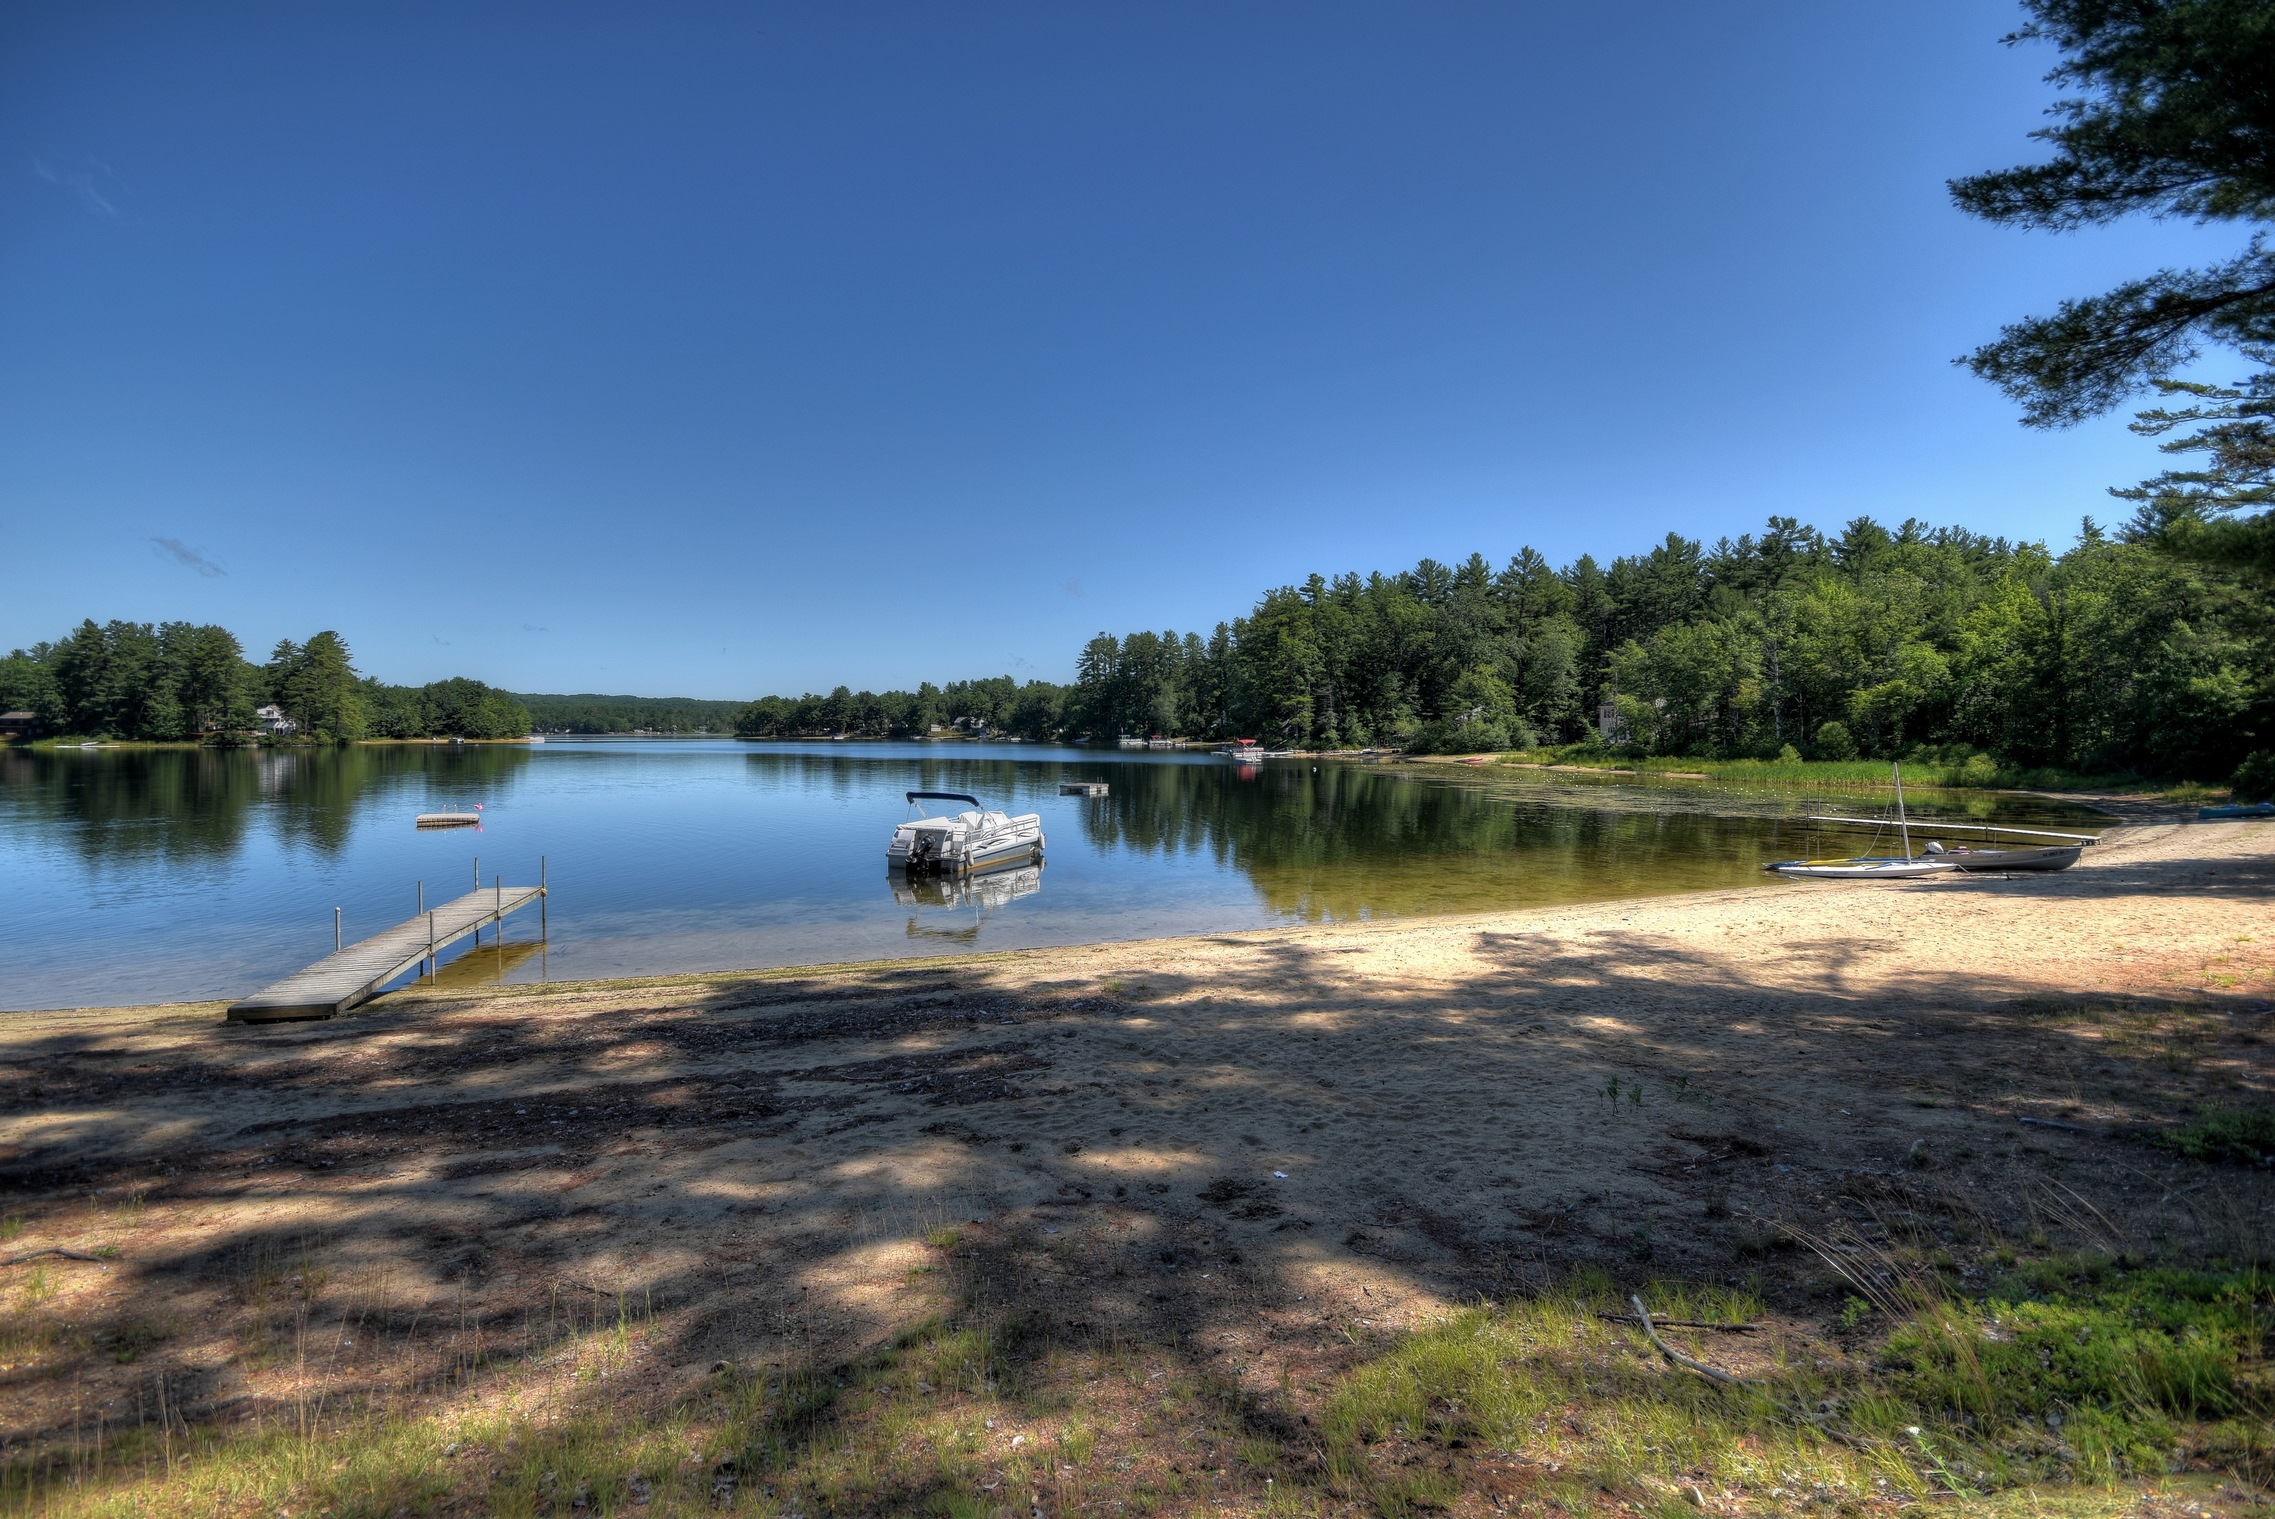 Single Family Home for Sale at Nicely Remodeled Silver Lake Waterfront 105 Gardners Grove Rd Belmont, New Hampshire, 03220 United States